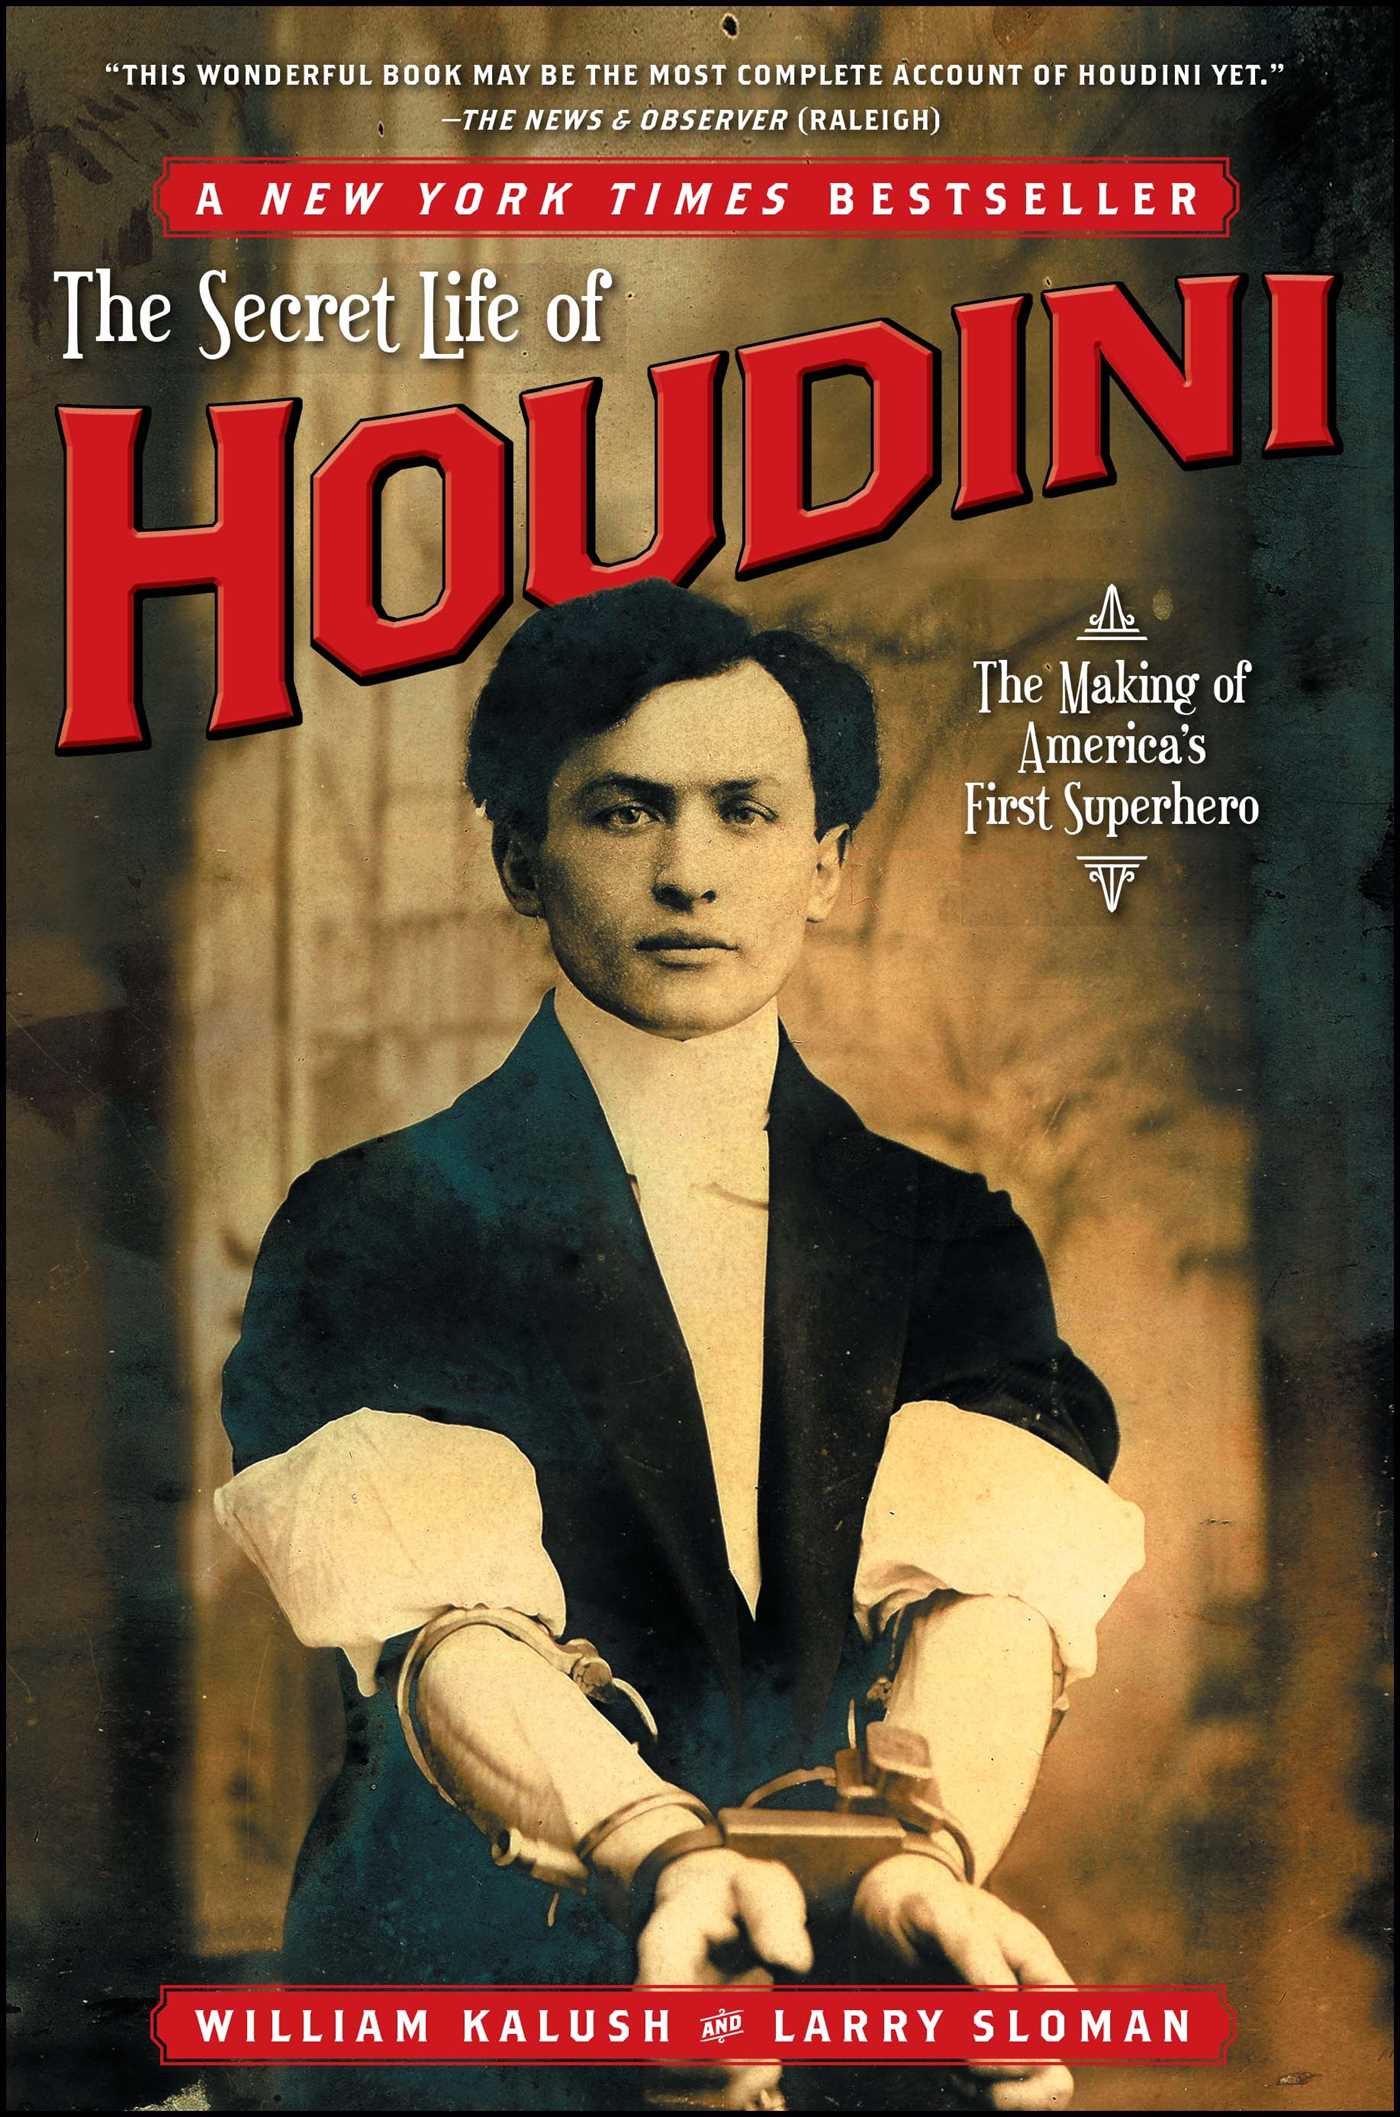 The Secret Life of Houdini | Book by William Kalush, Larry